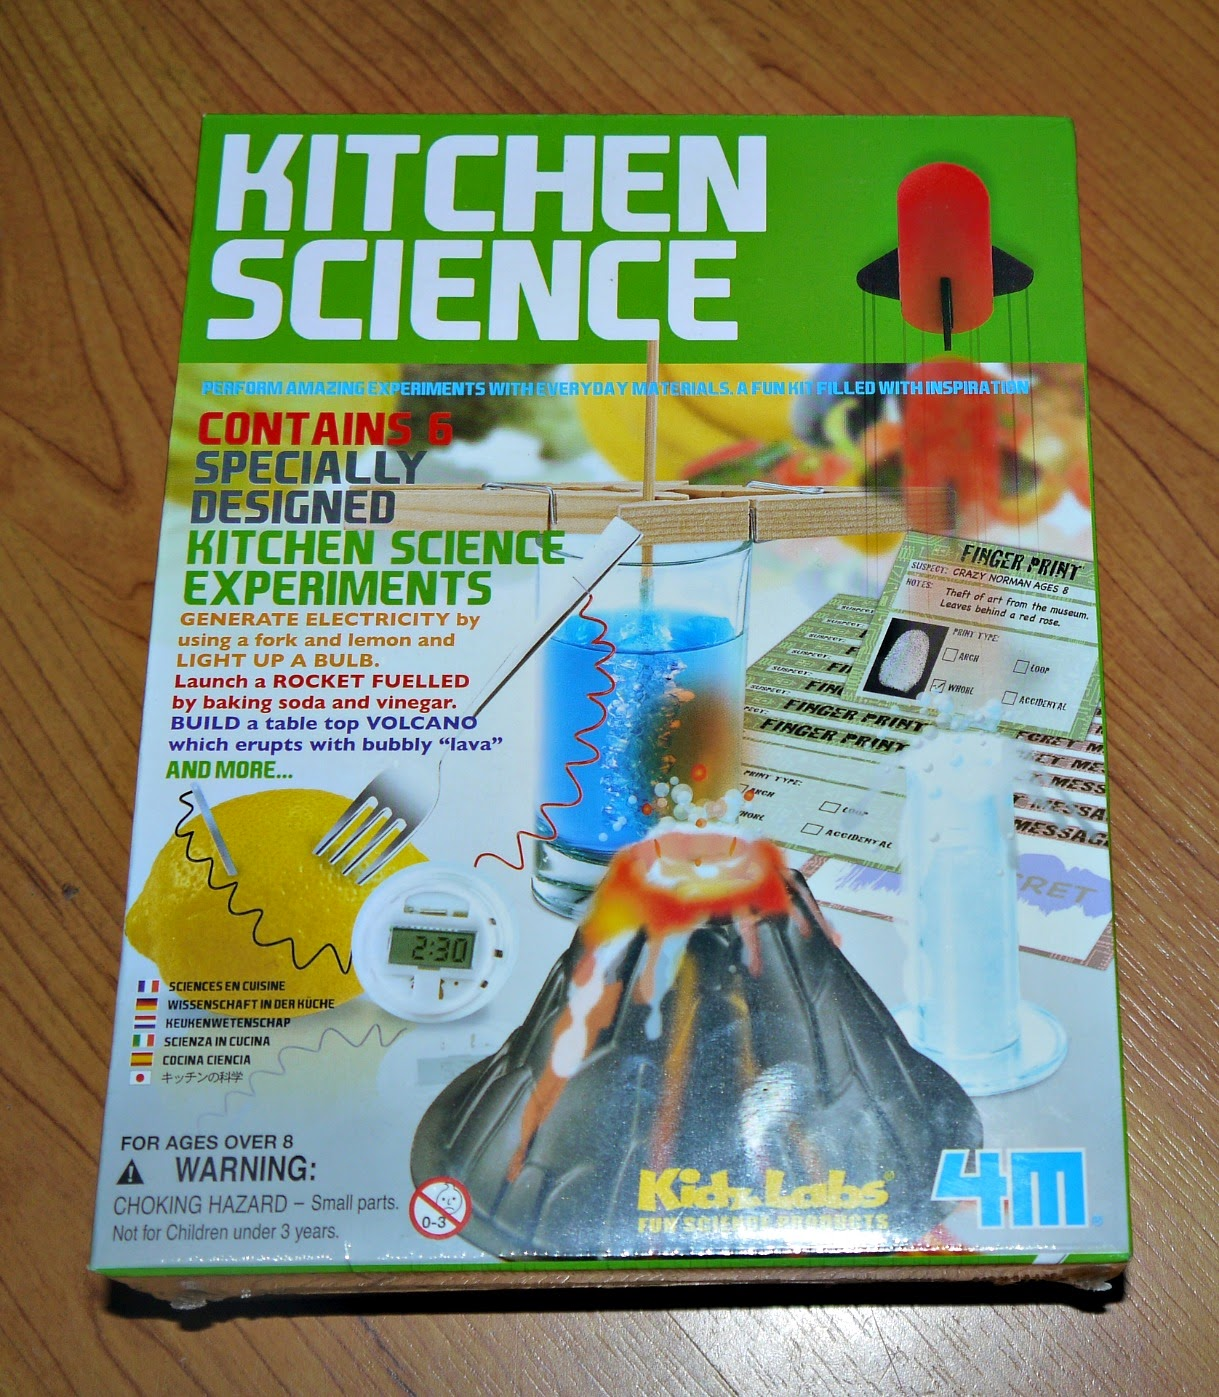 4m kitchen science kit instructions